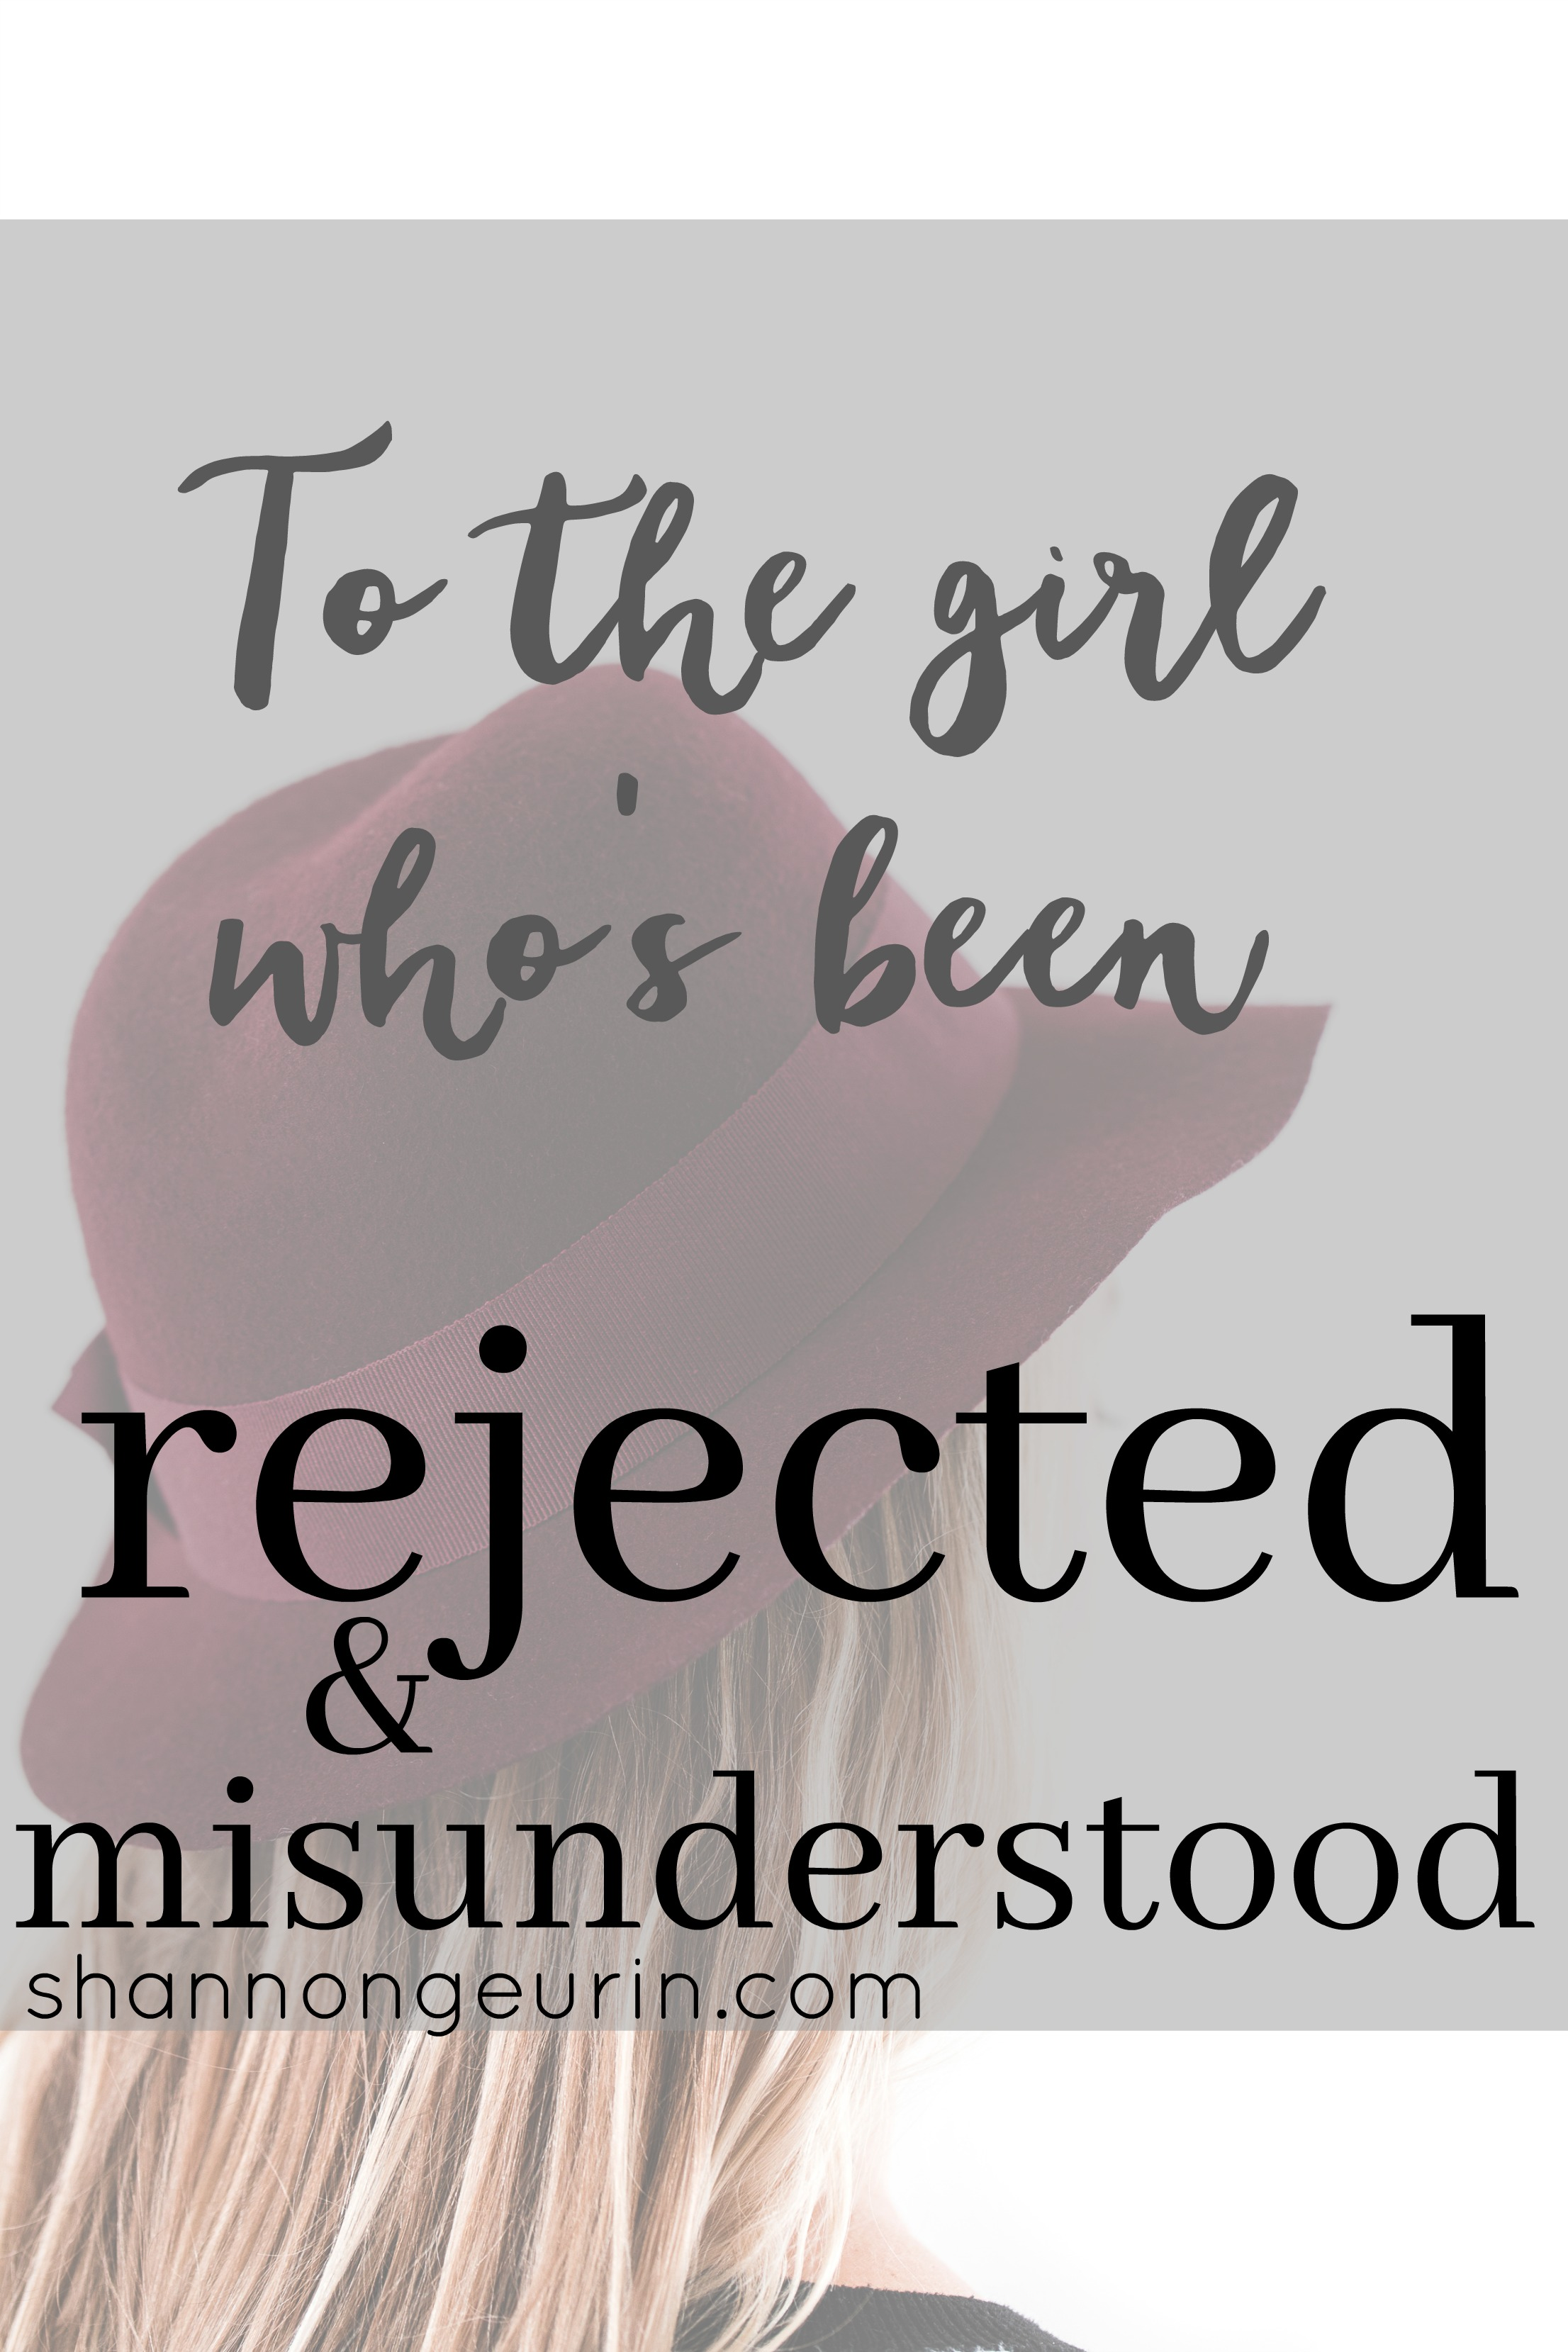 To the girl who's been rejected and misunderstood- you still have purpose!